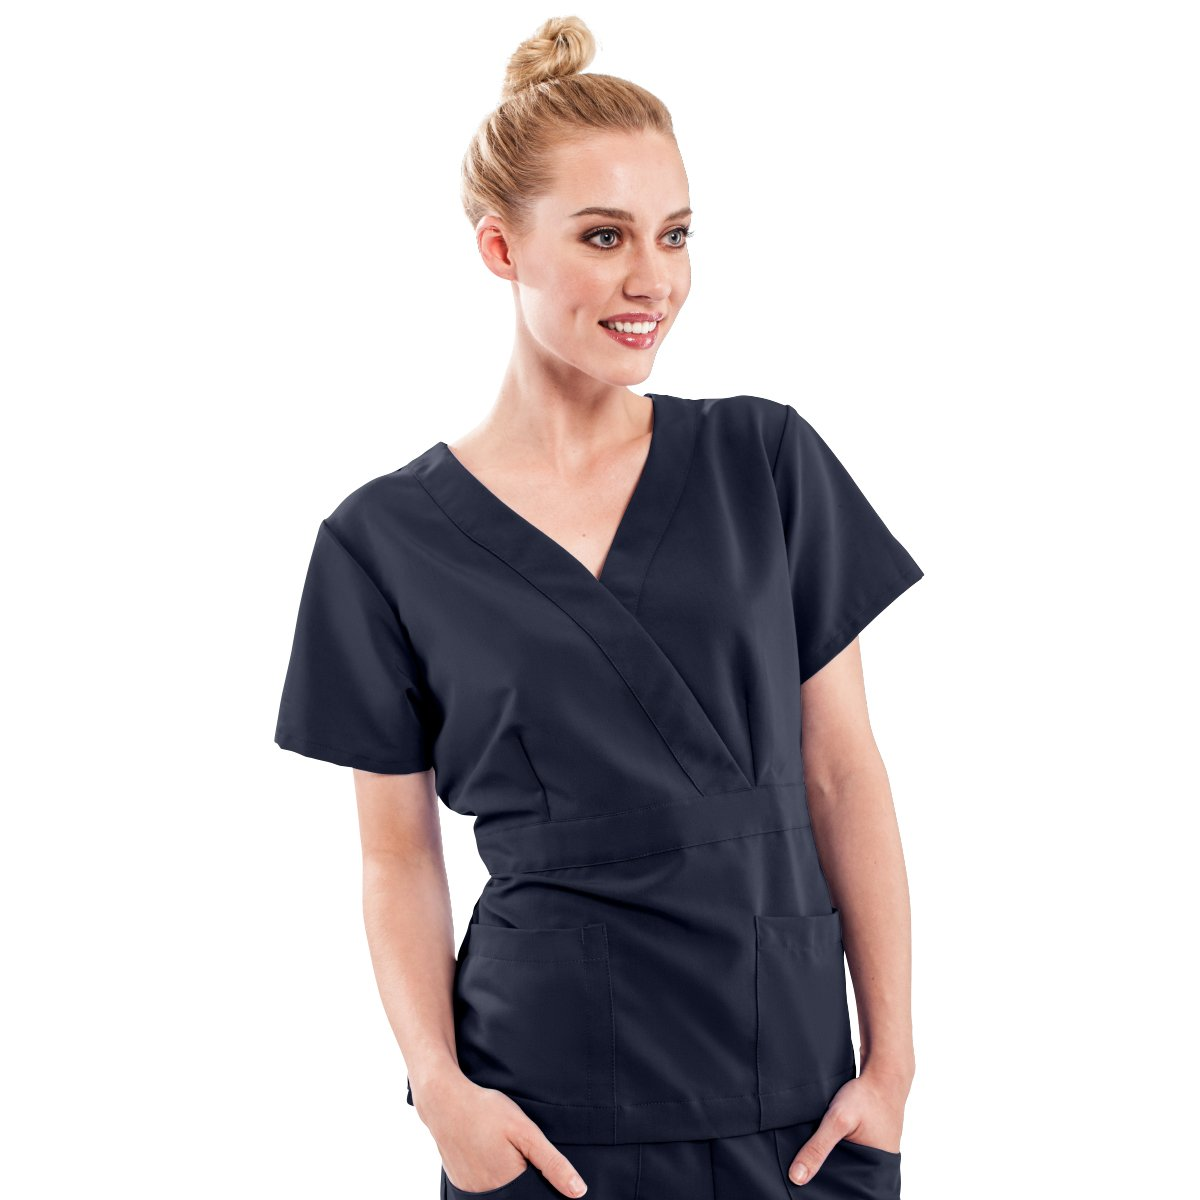 ave Women's Medical Scrub Top, Park ave, Slimming Mock Wrap Scrub Shirt, Great for Nurses, Navy, X-Large